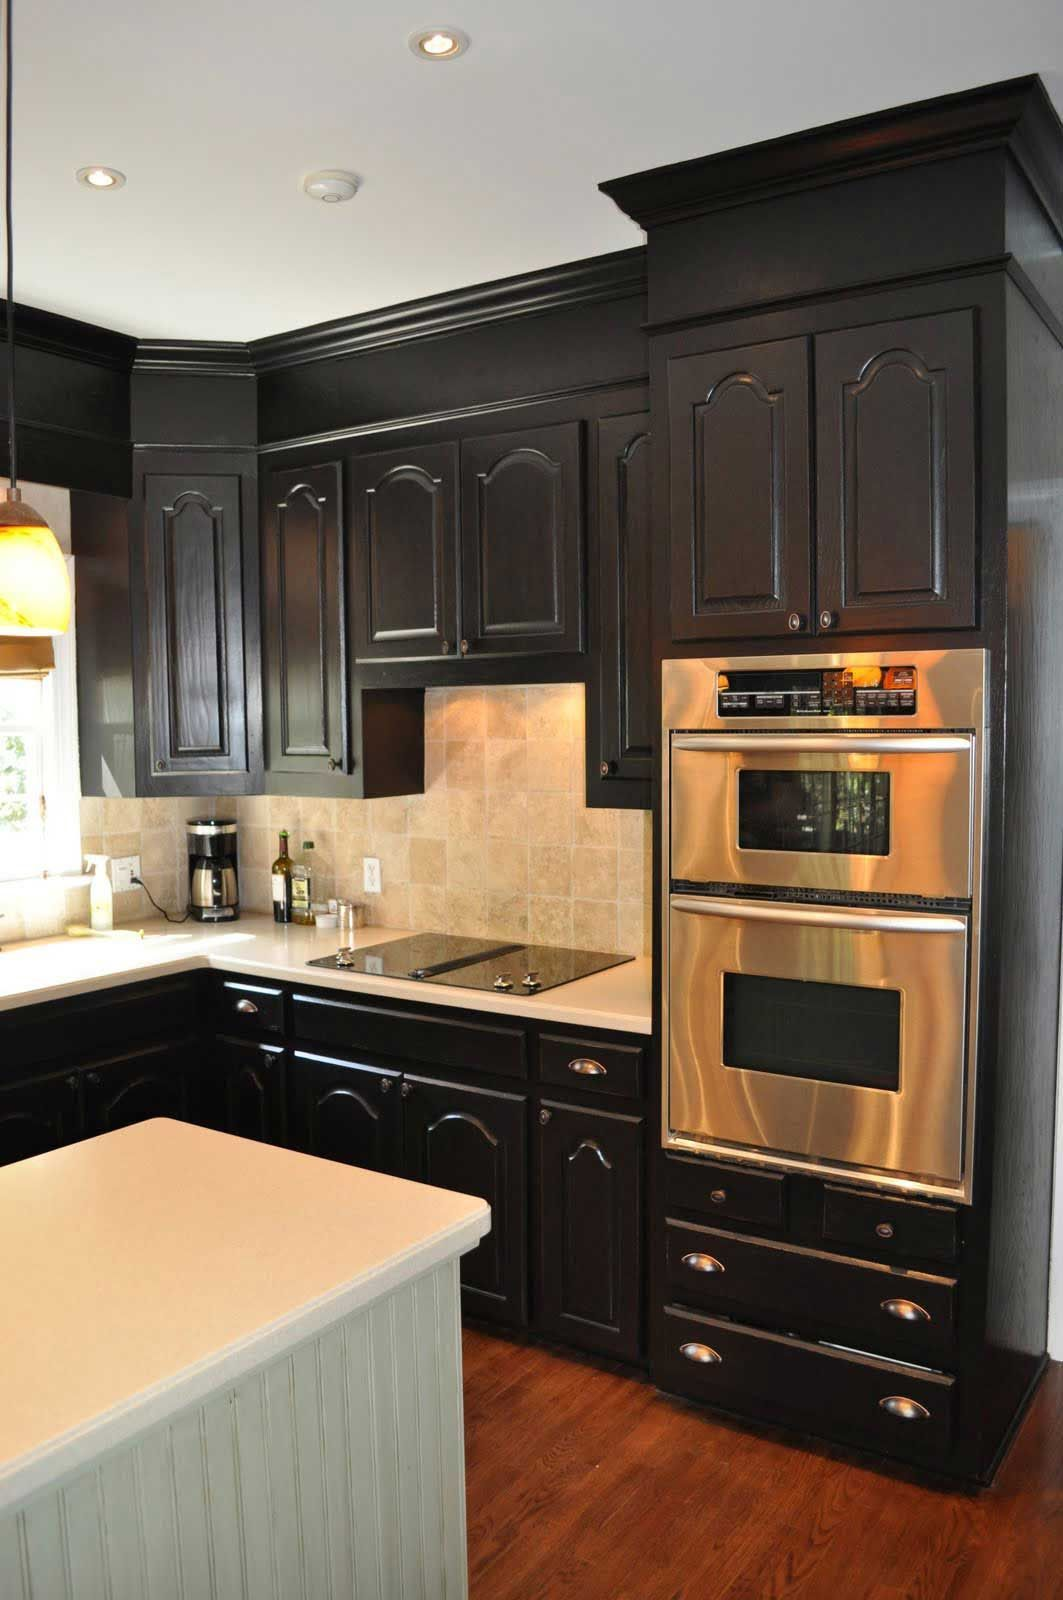 16 Insanely Black Kitchen Paint That Will Give You Fab Kitchen Ideas Kitchen Design Small Home Kitchens Kitchen Soffit